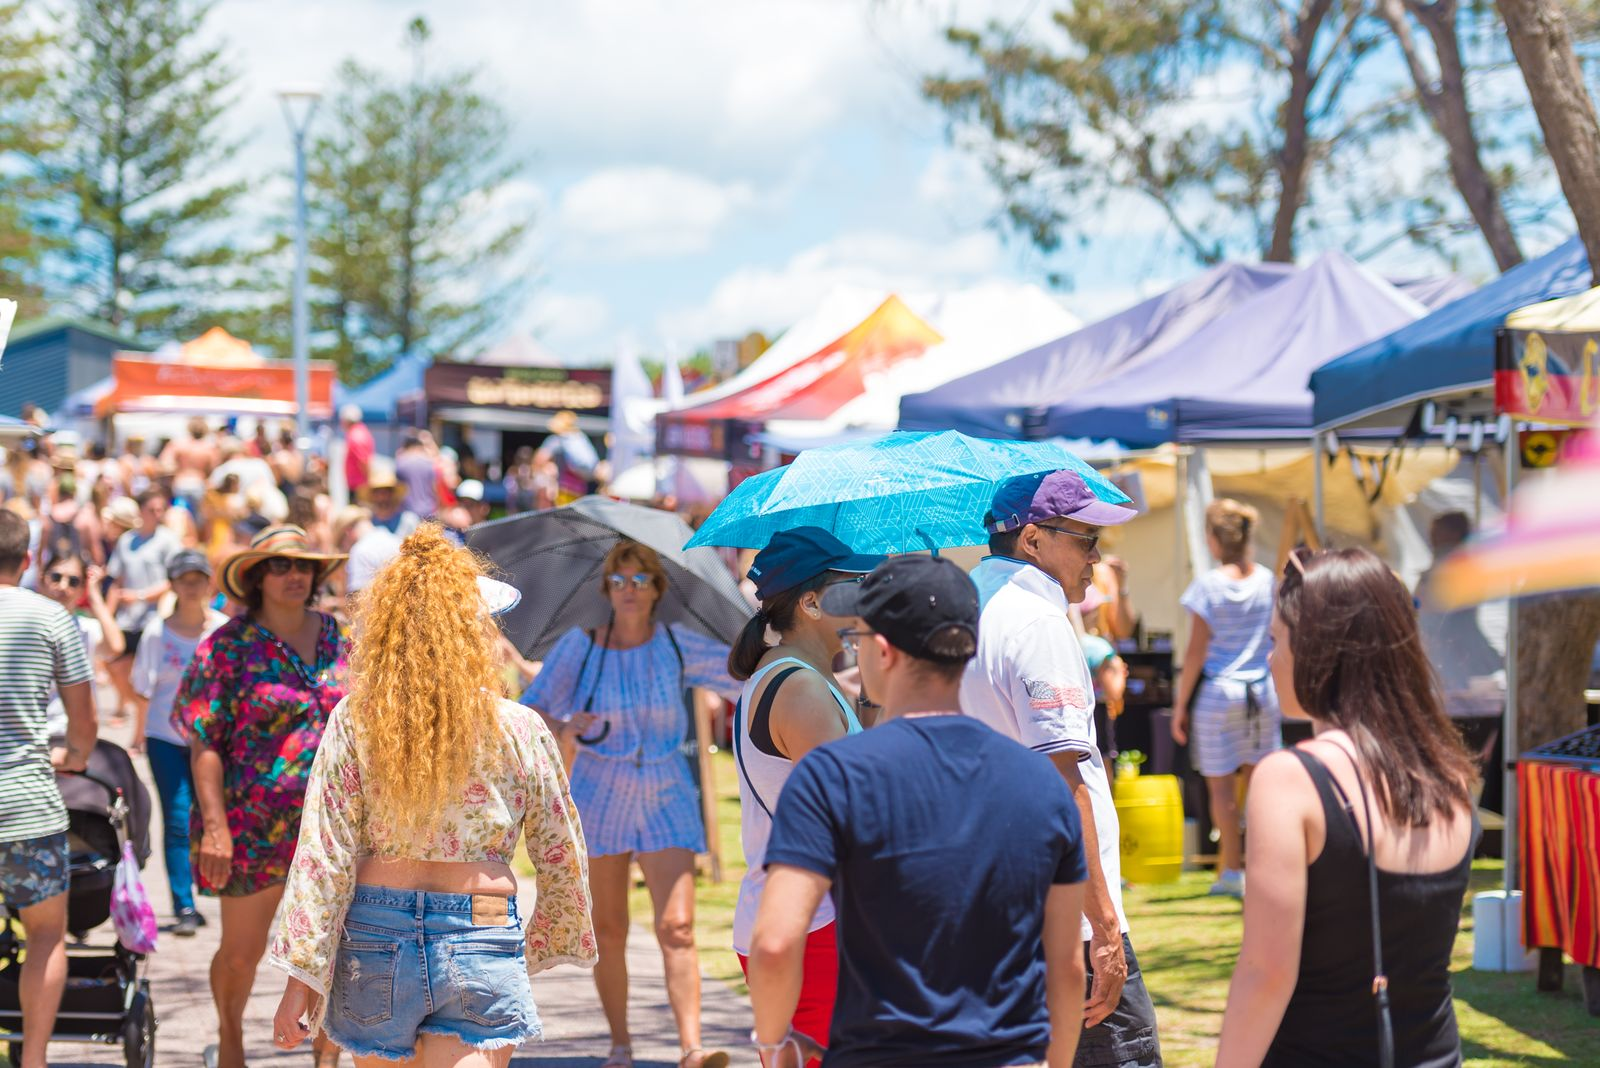 People shopping at festival stall on outdoor fair in Byron Bay, NSW, Australia